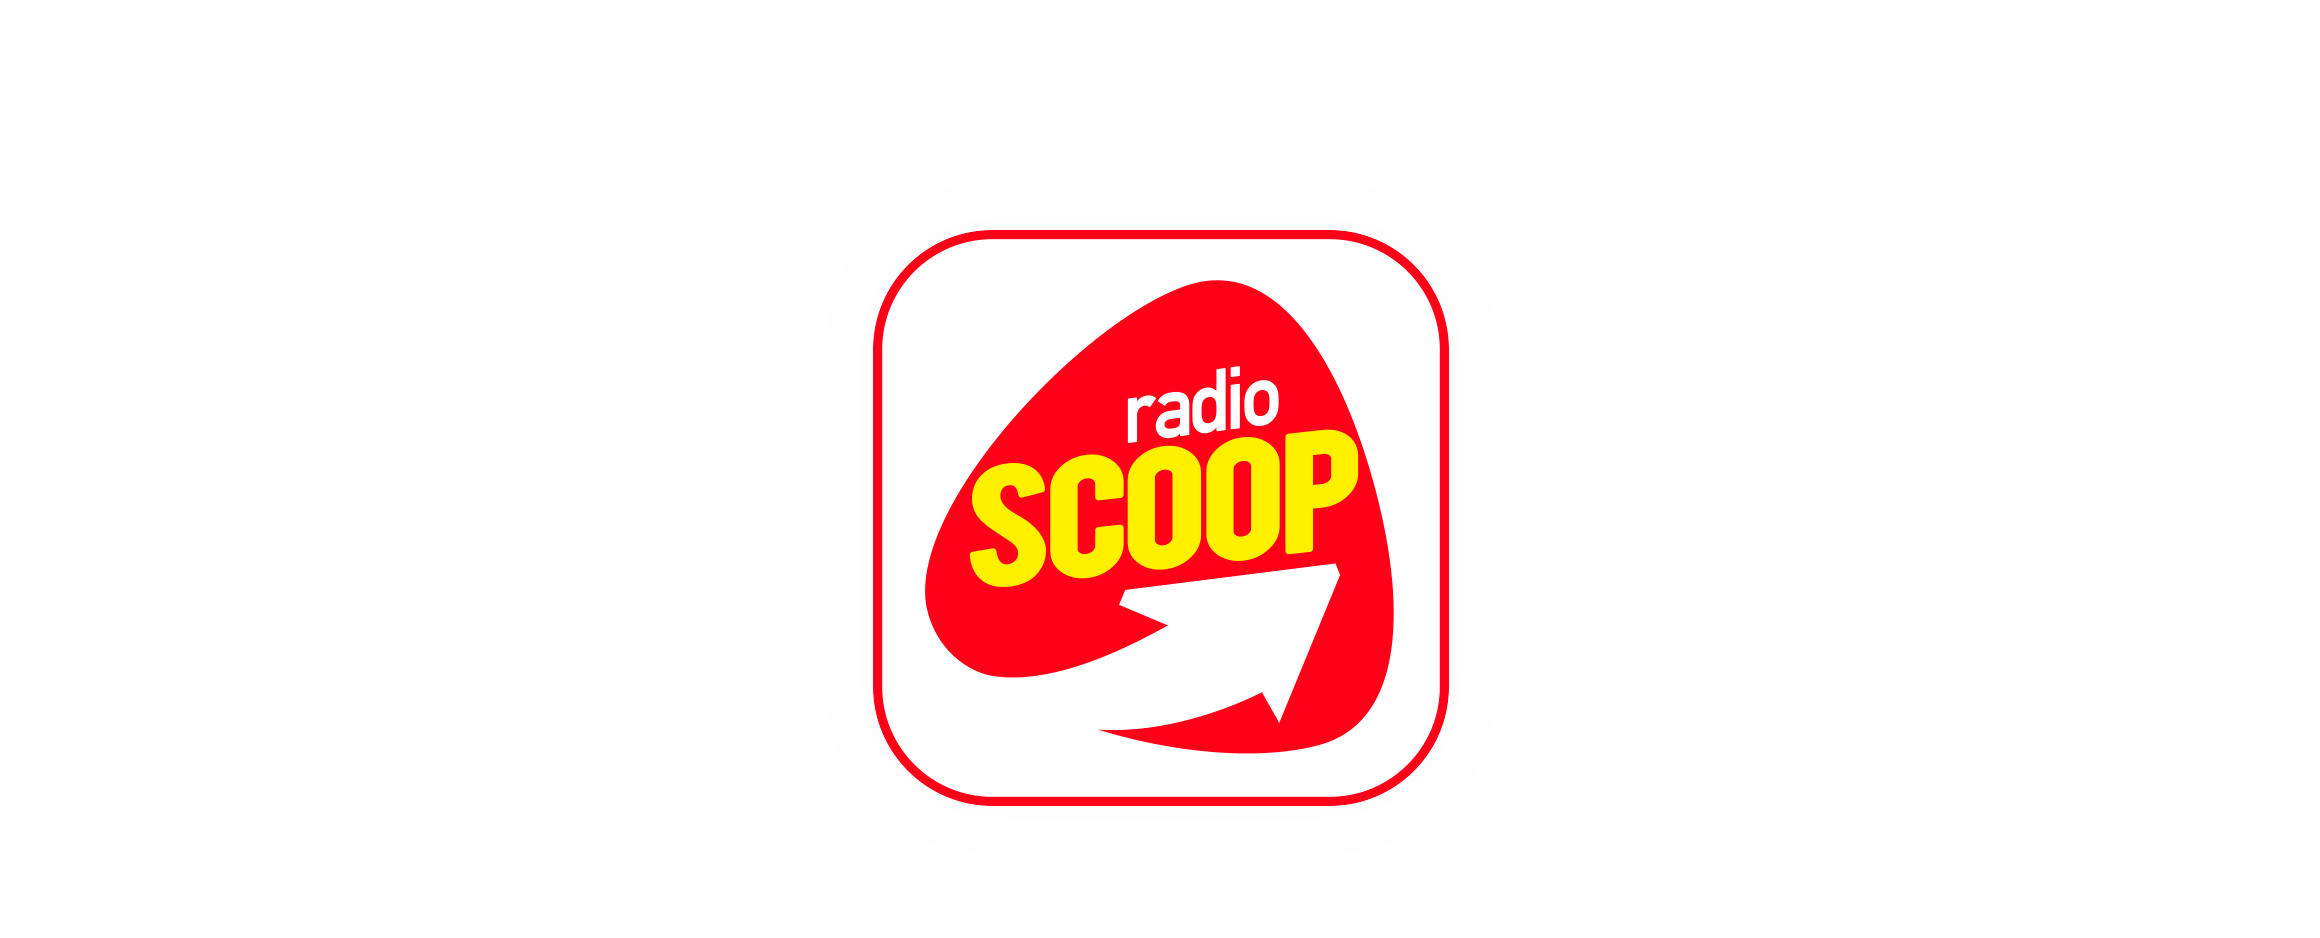 logo radio scoop